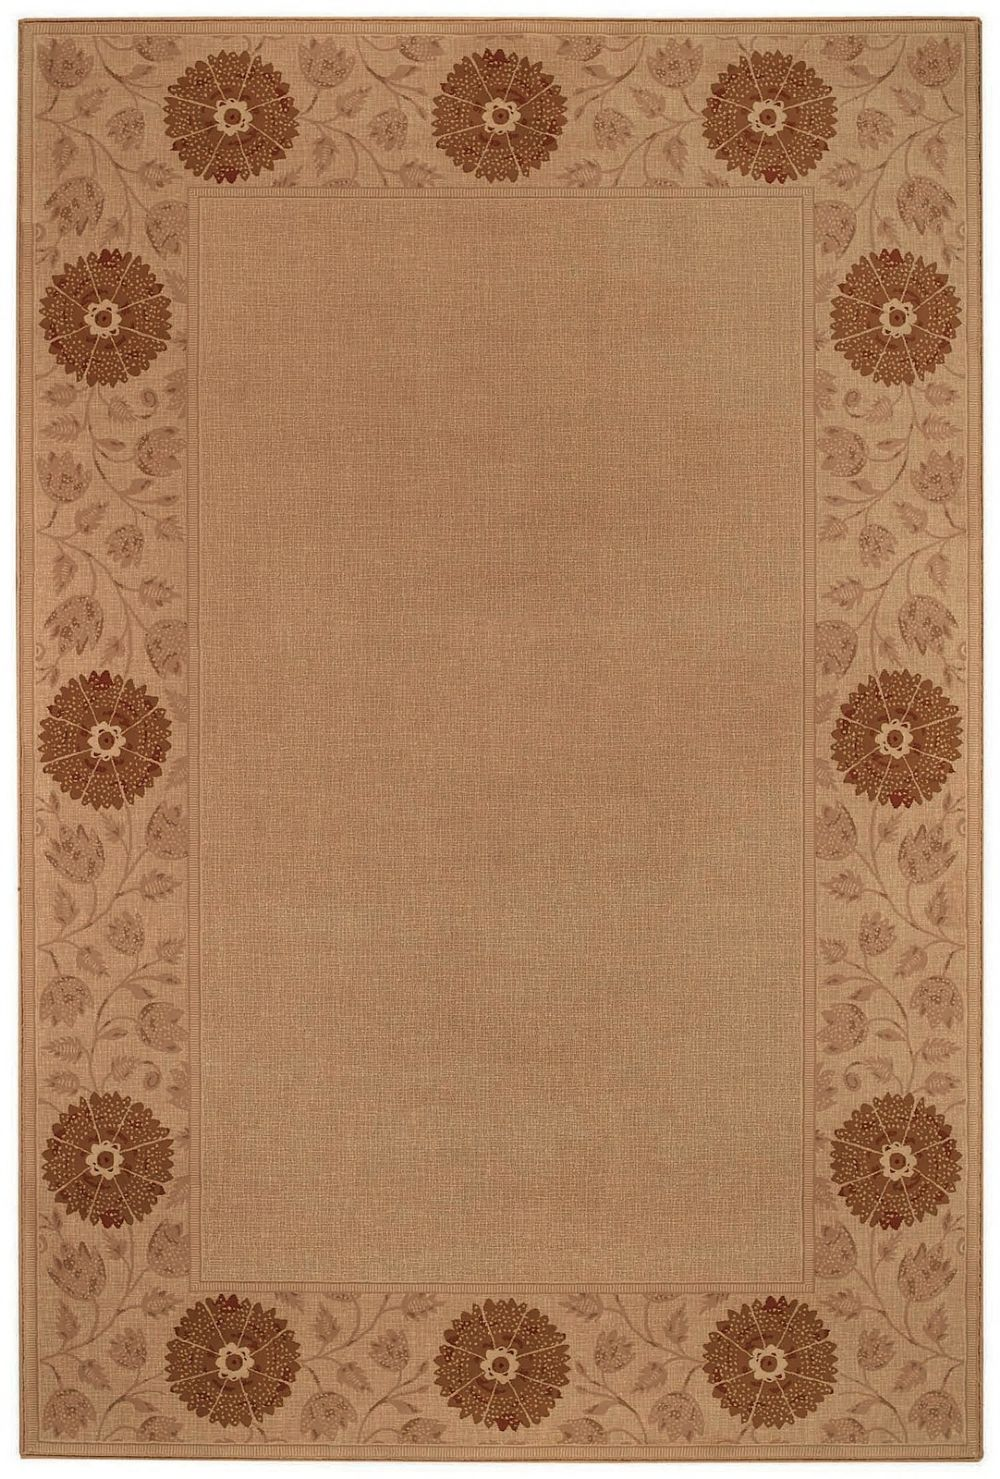 capel satin-kimono contemporary area rug collection